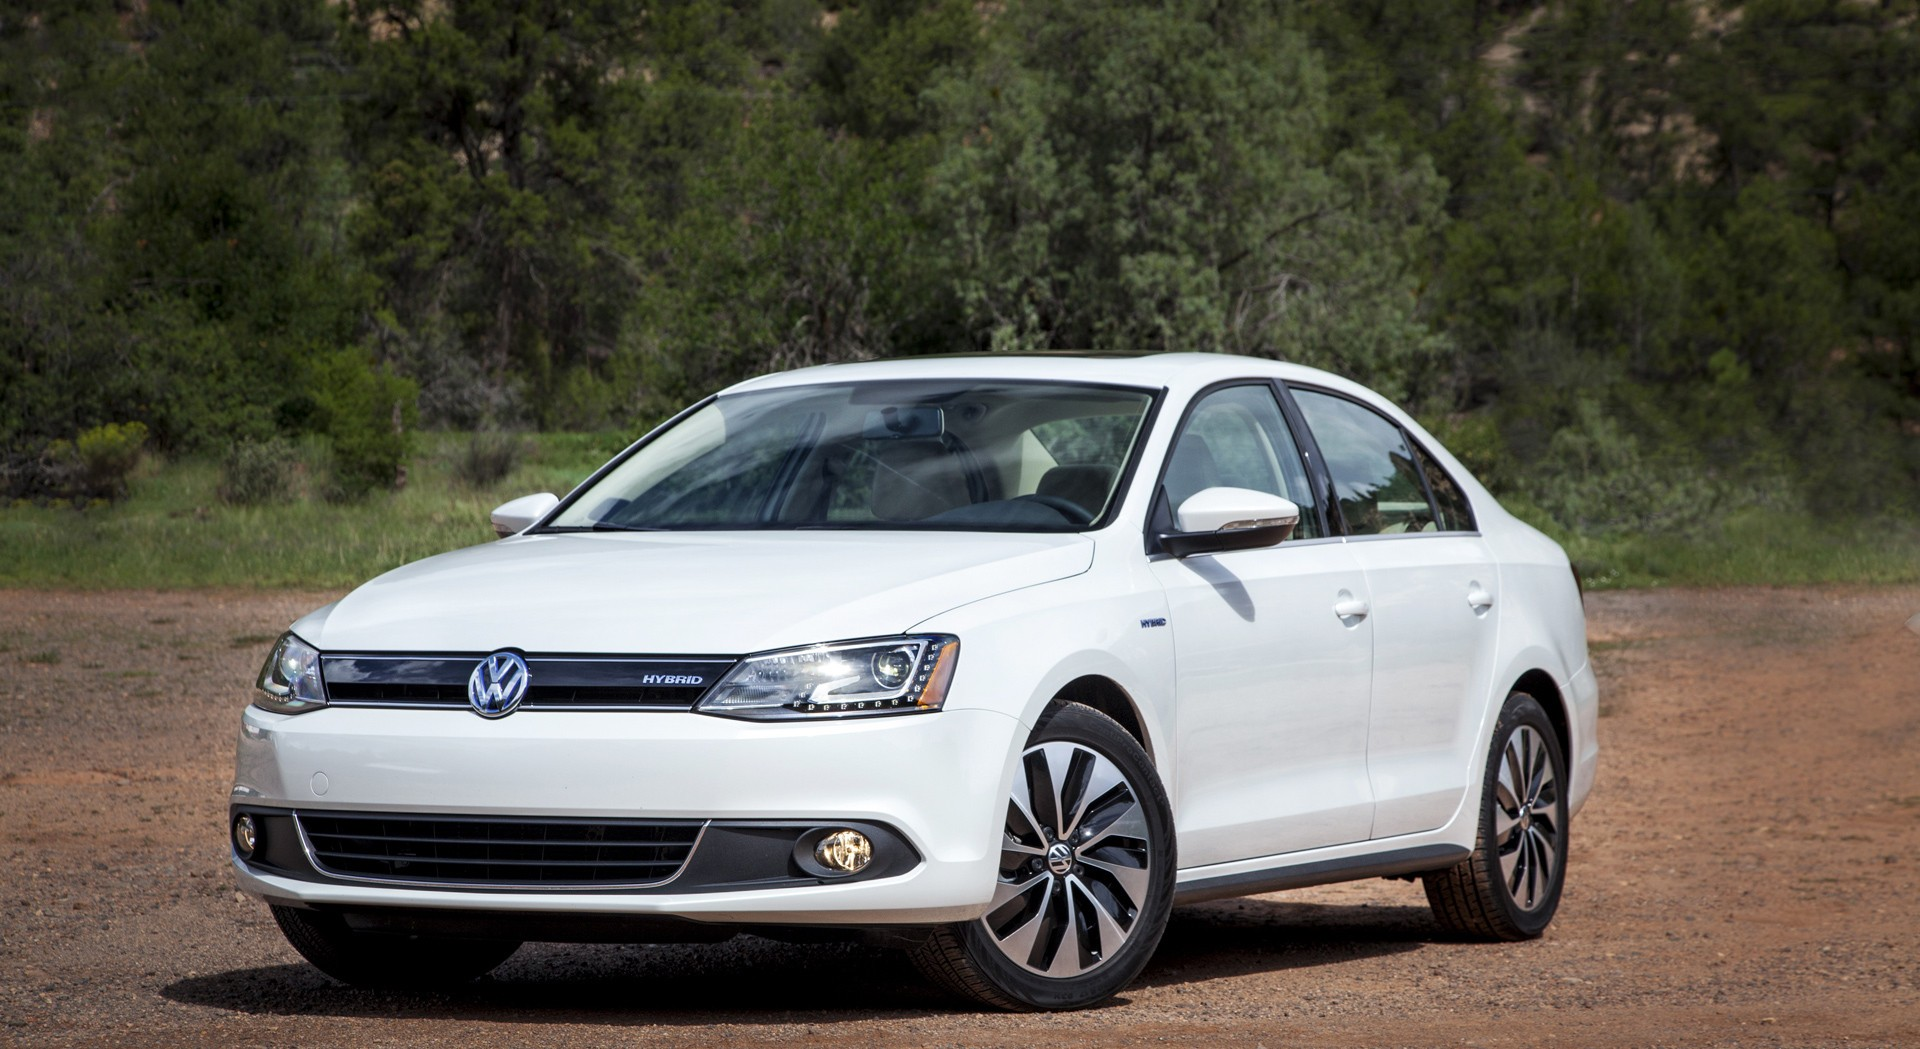 volkswagen jetta hybrid wallpaper hd desktop wallpapers 4k hd. Black Bedroom Furniture Sets. Home Design Ideas